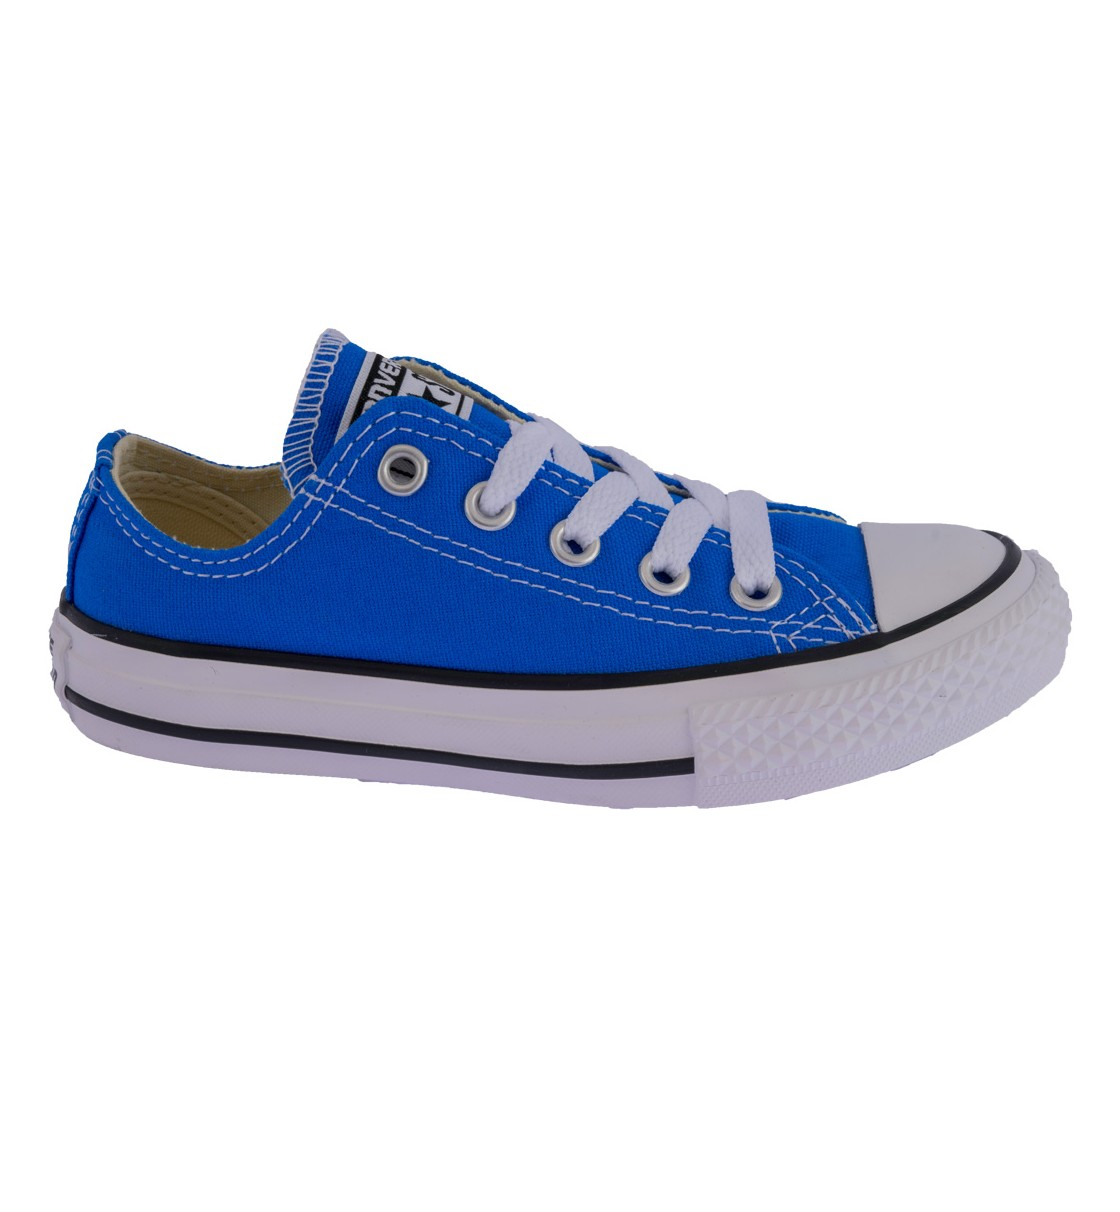 Converse Παιδικό Παπούτσι Μόδας Chuck Taylor All Star Ox 355572C